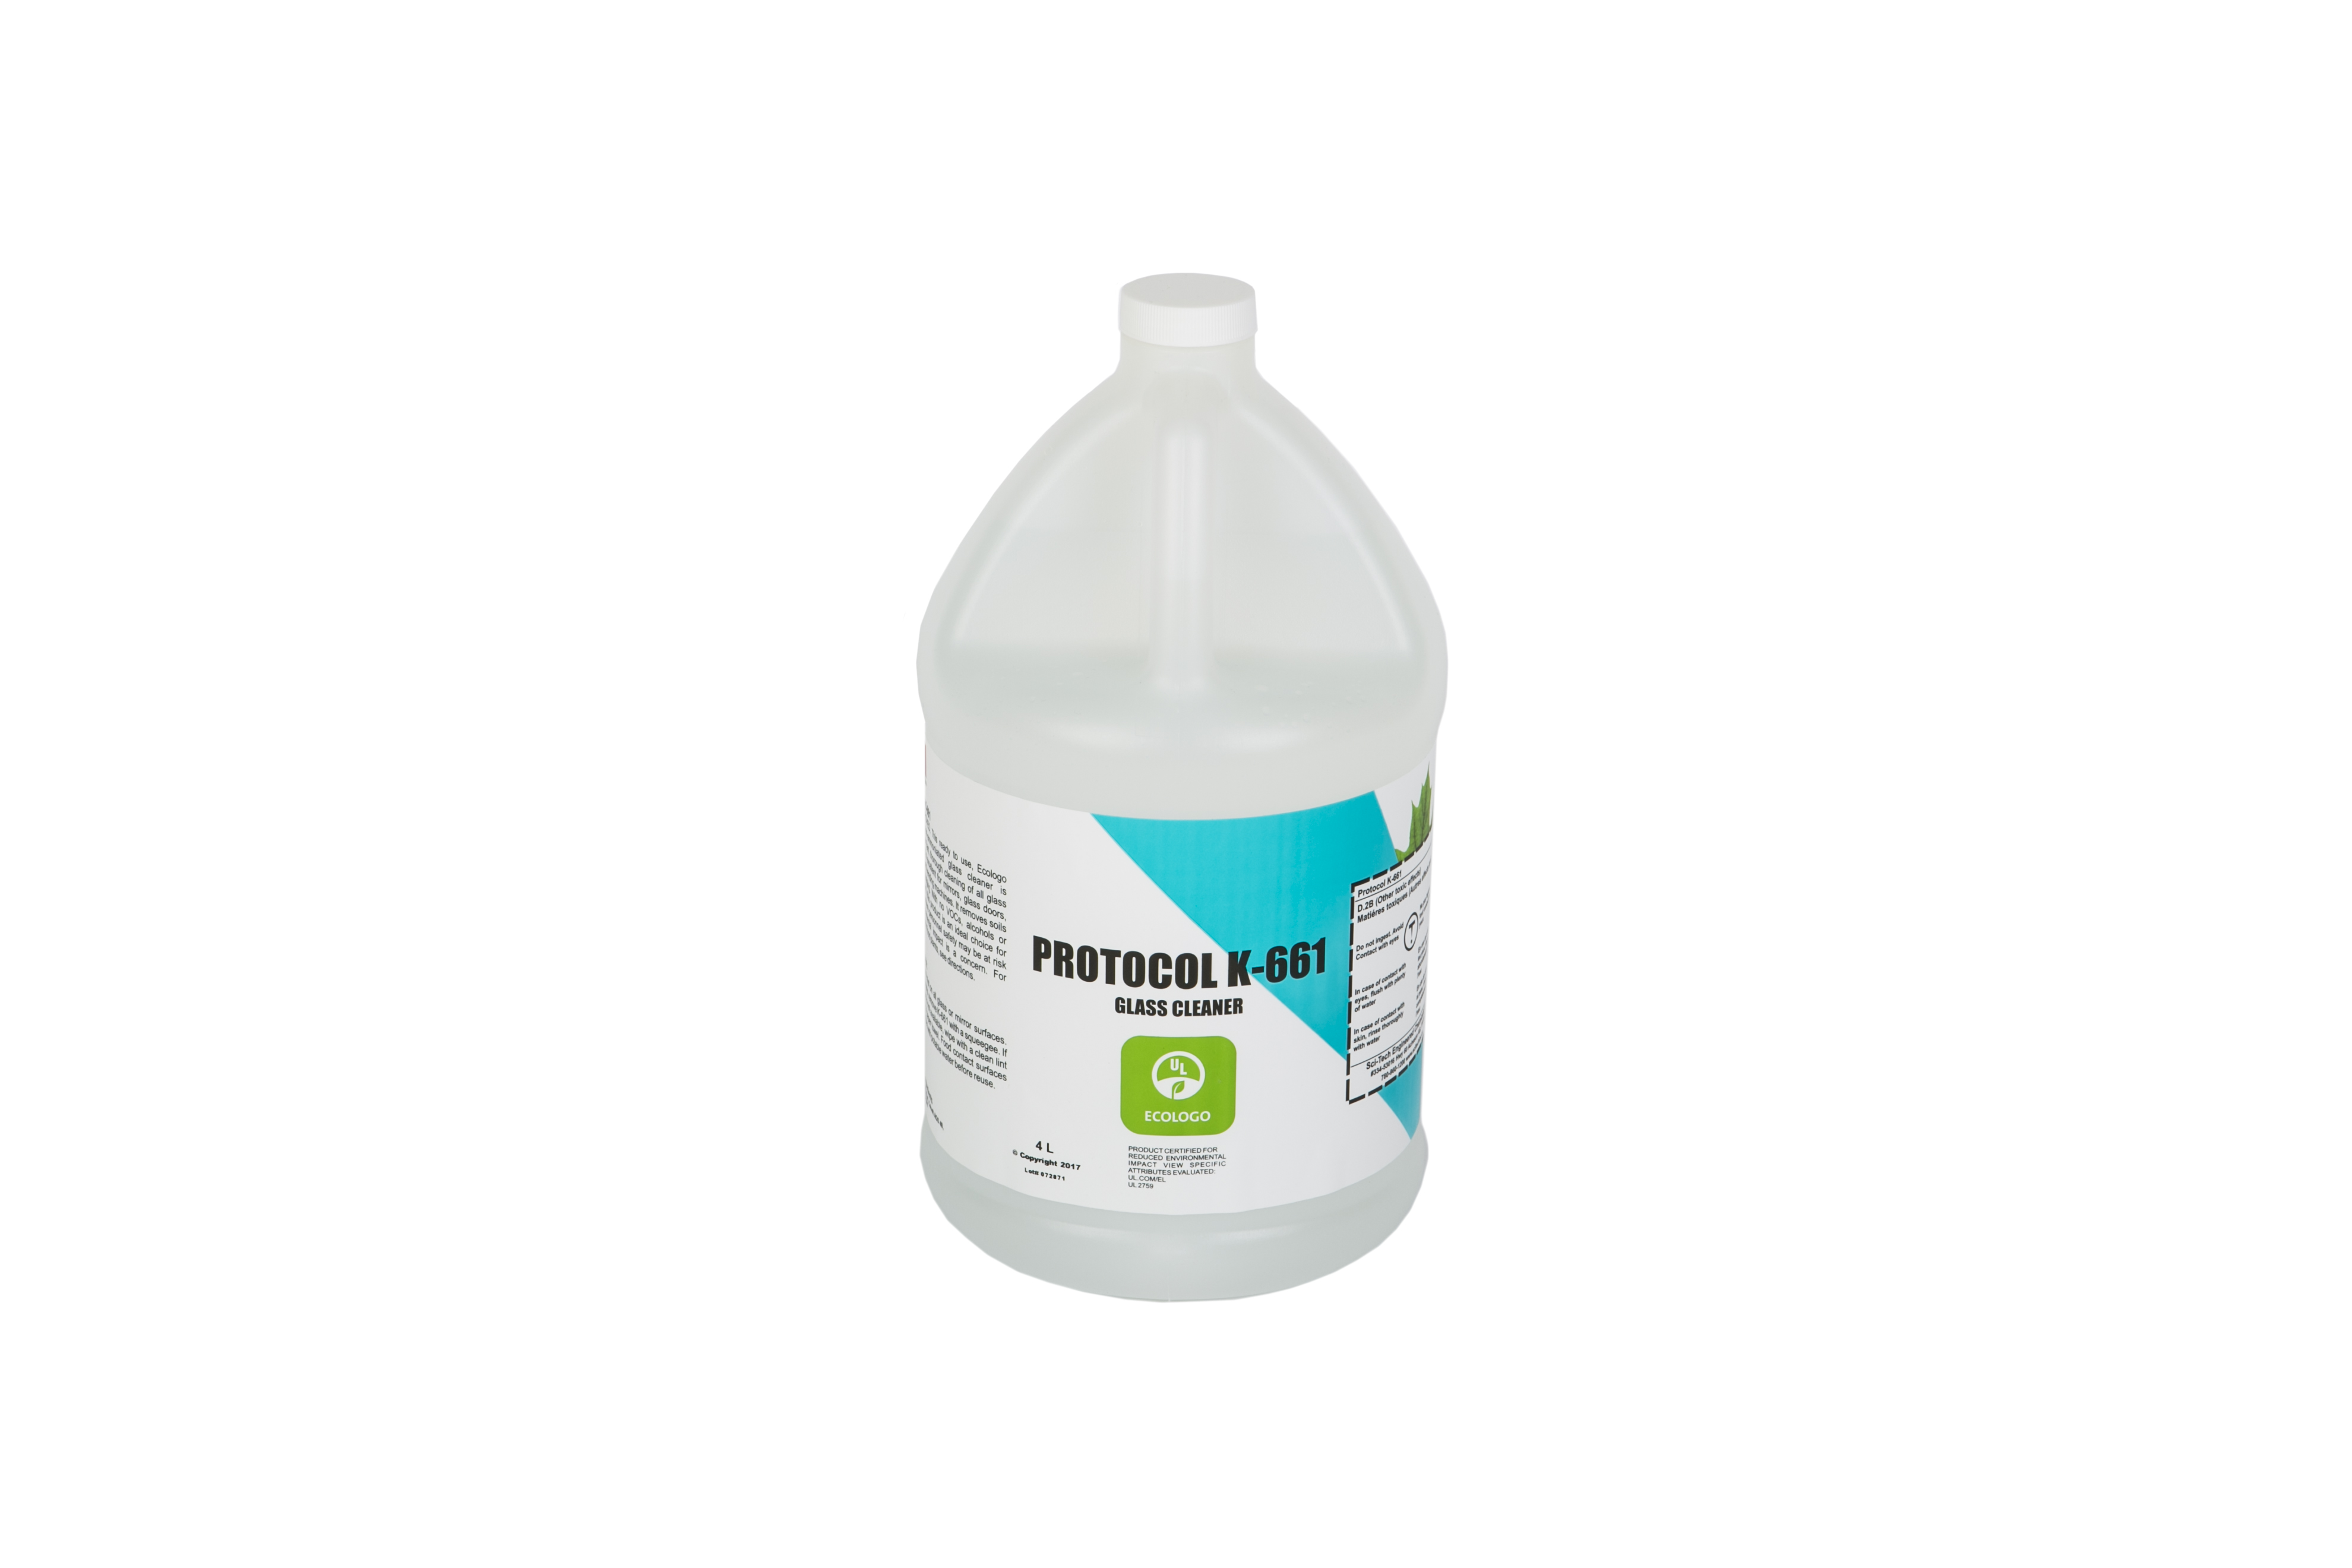 Protocol K661 UL Eco Certified Glass Cleaner - 4 Litre